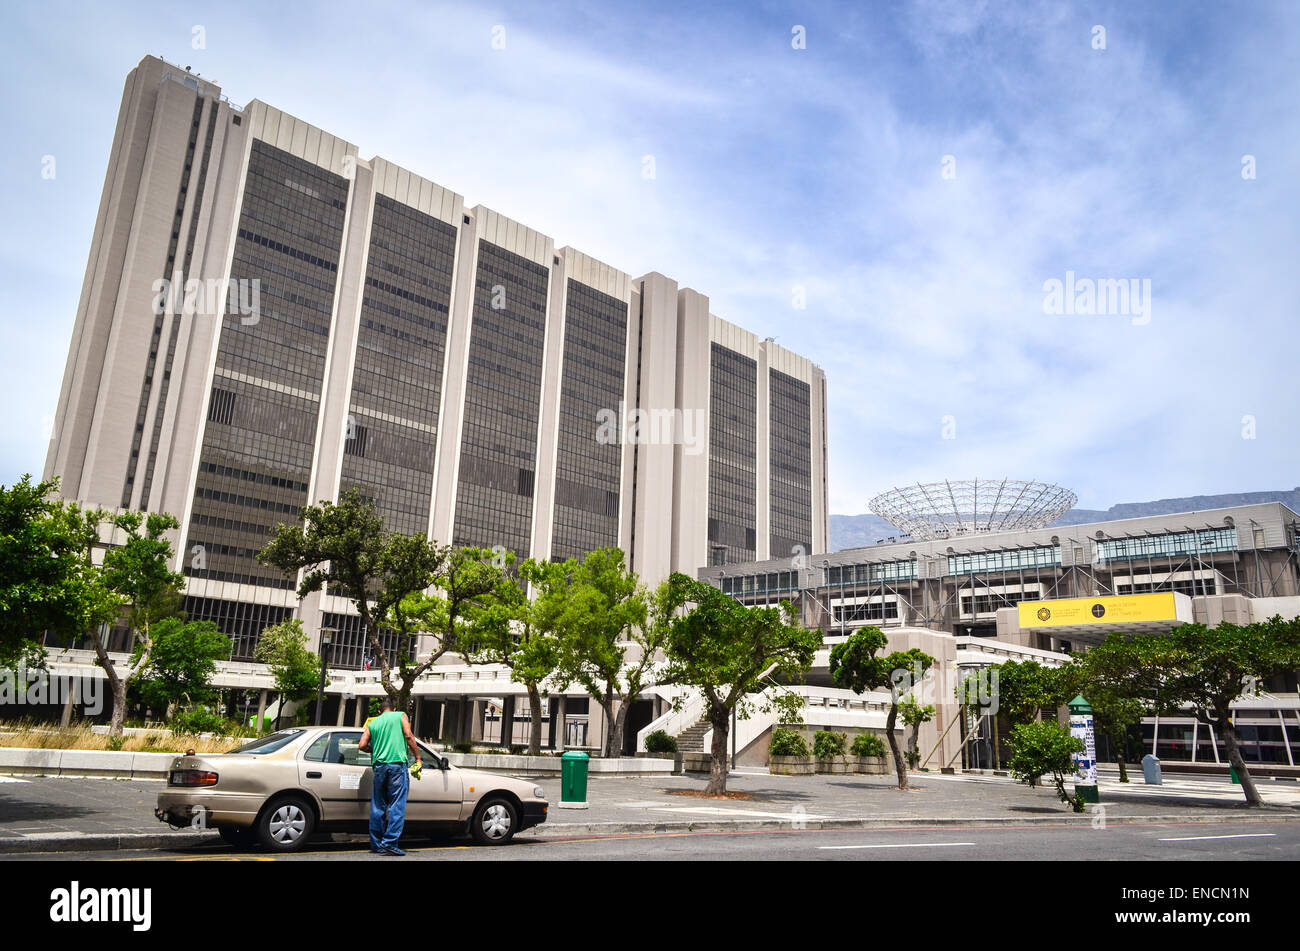 Civic centre, in the city center of Cape Town, South Africa, and a taxi - Stock Image